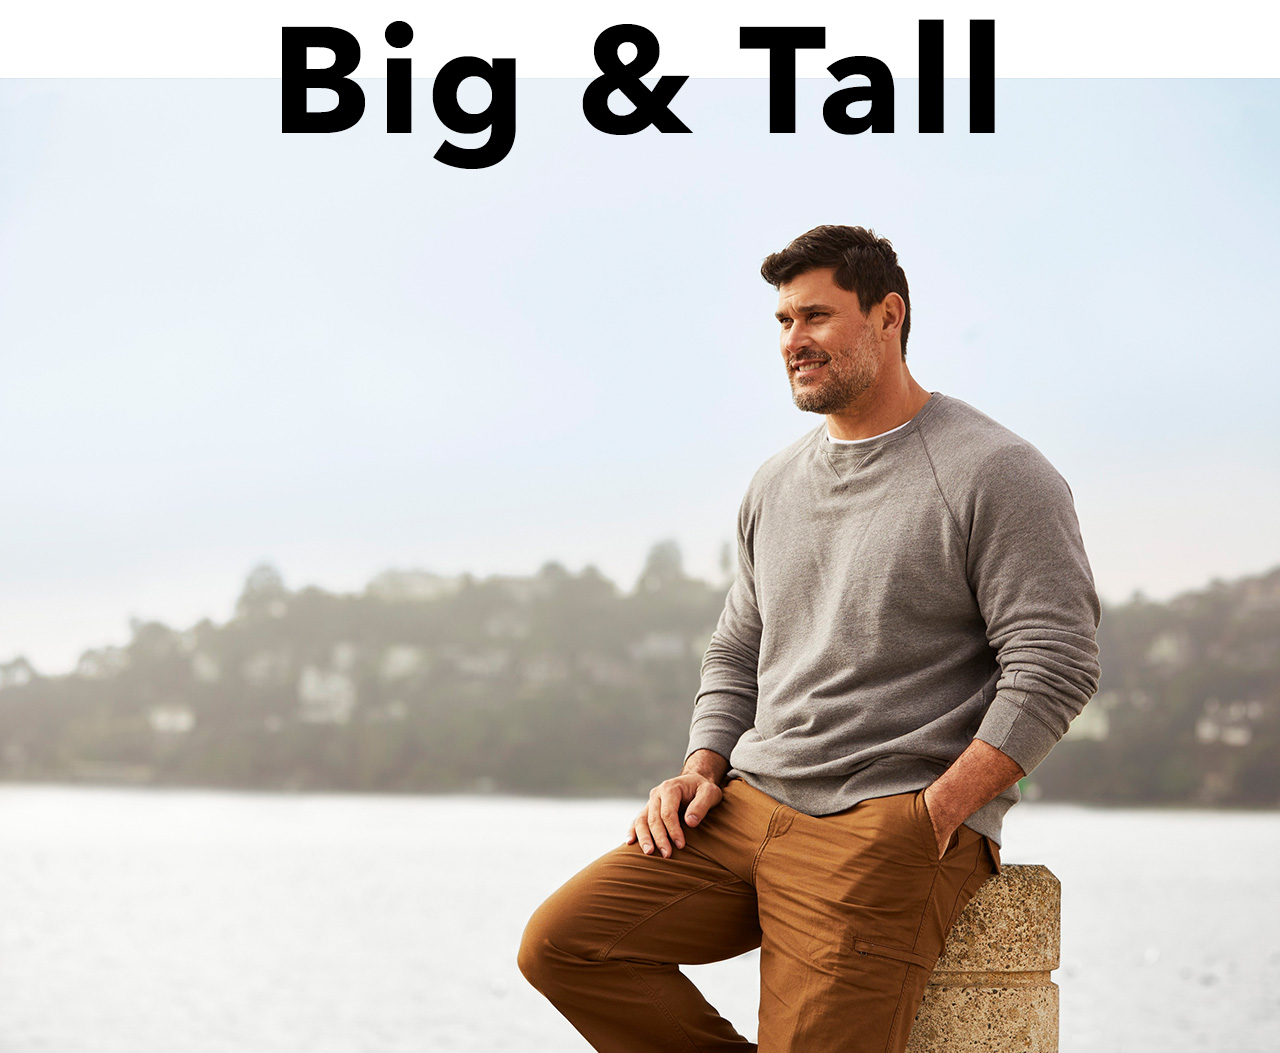 SHOP OUR FAVORITE BIG & TALL DOWNTIME KHAKI